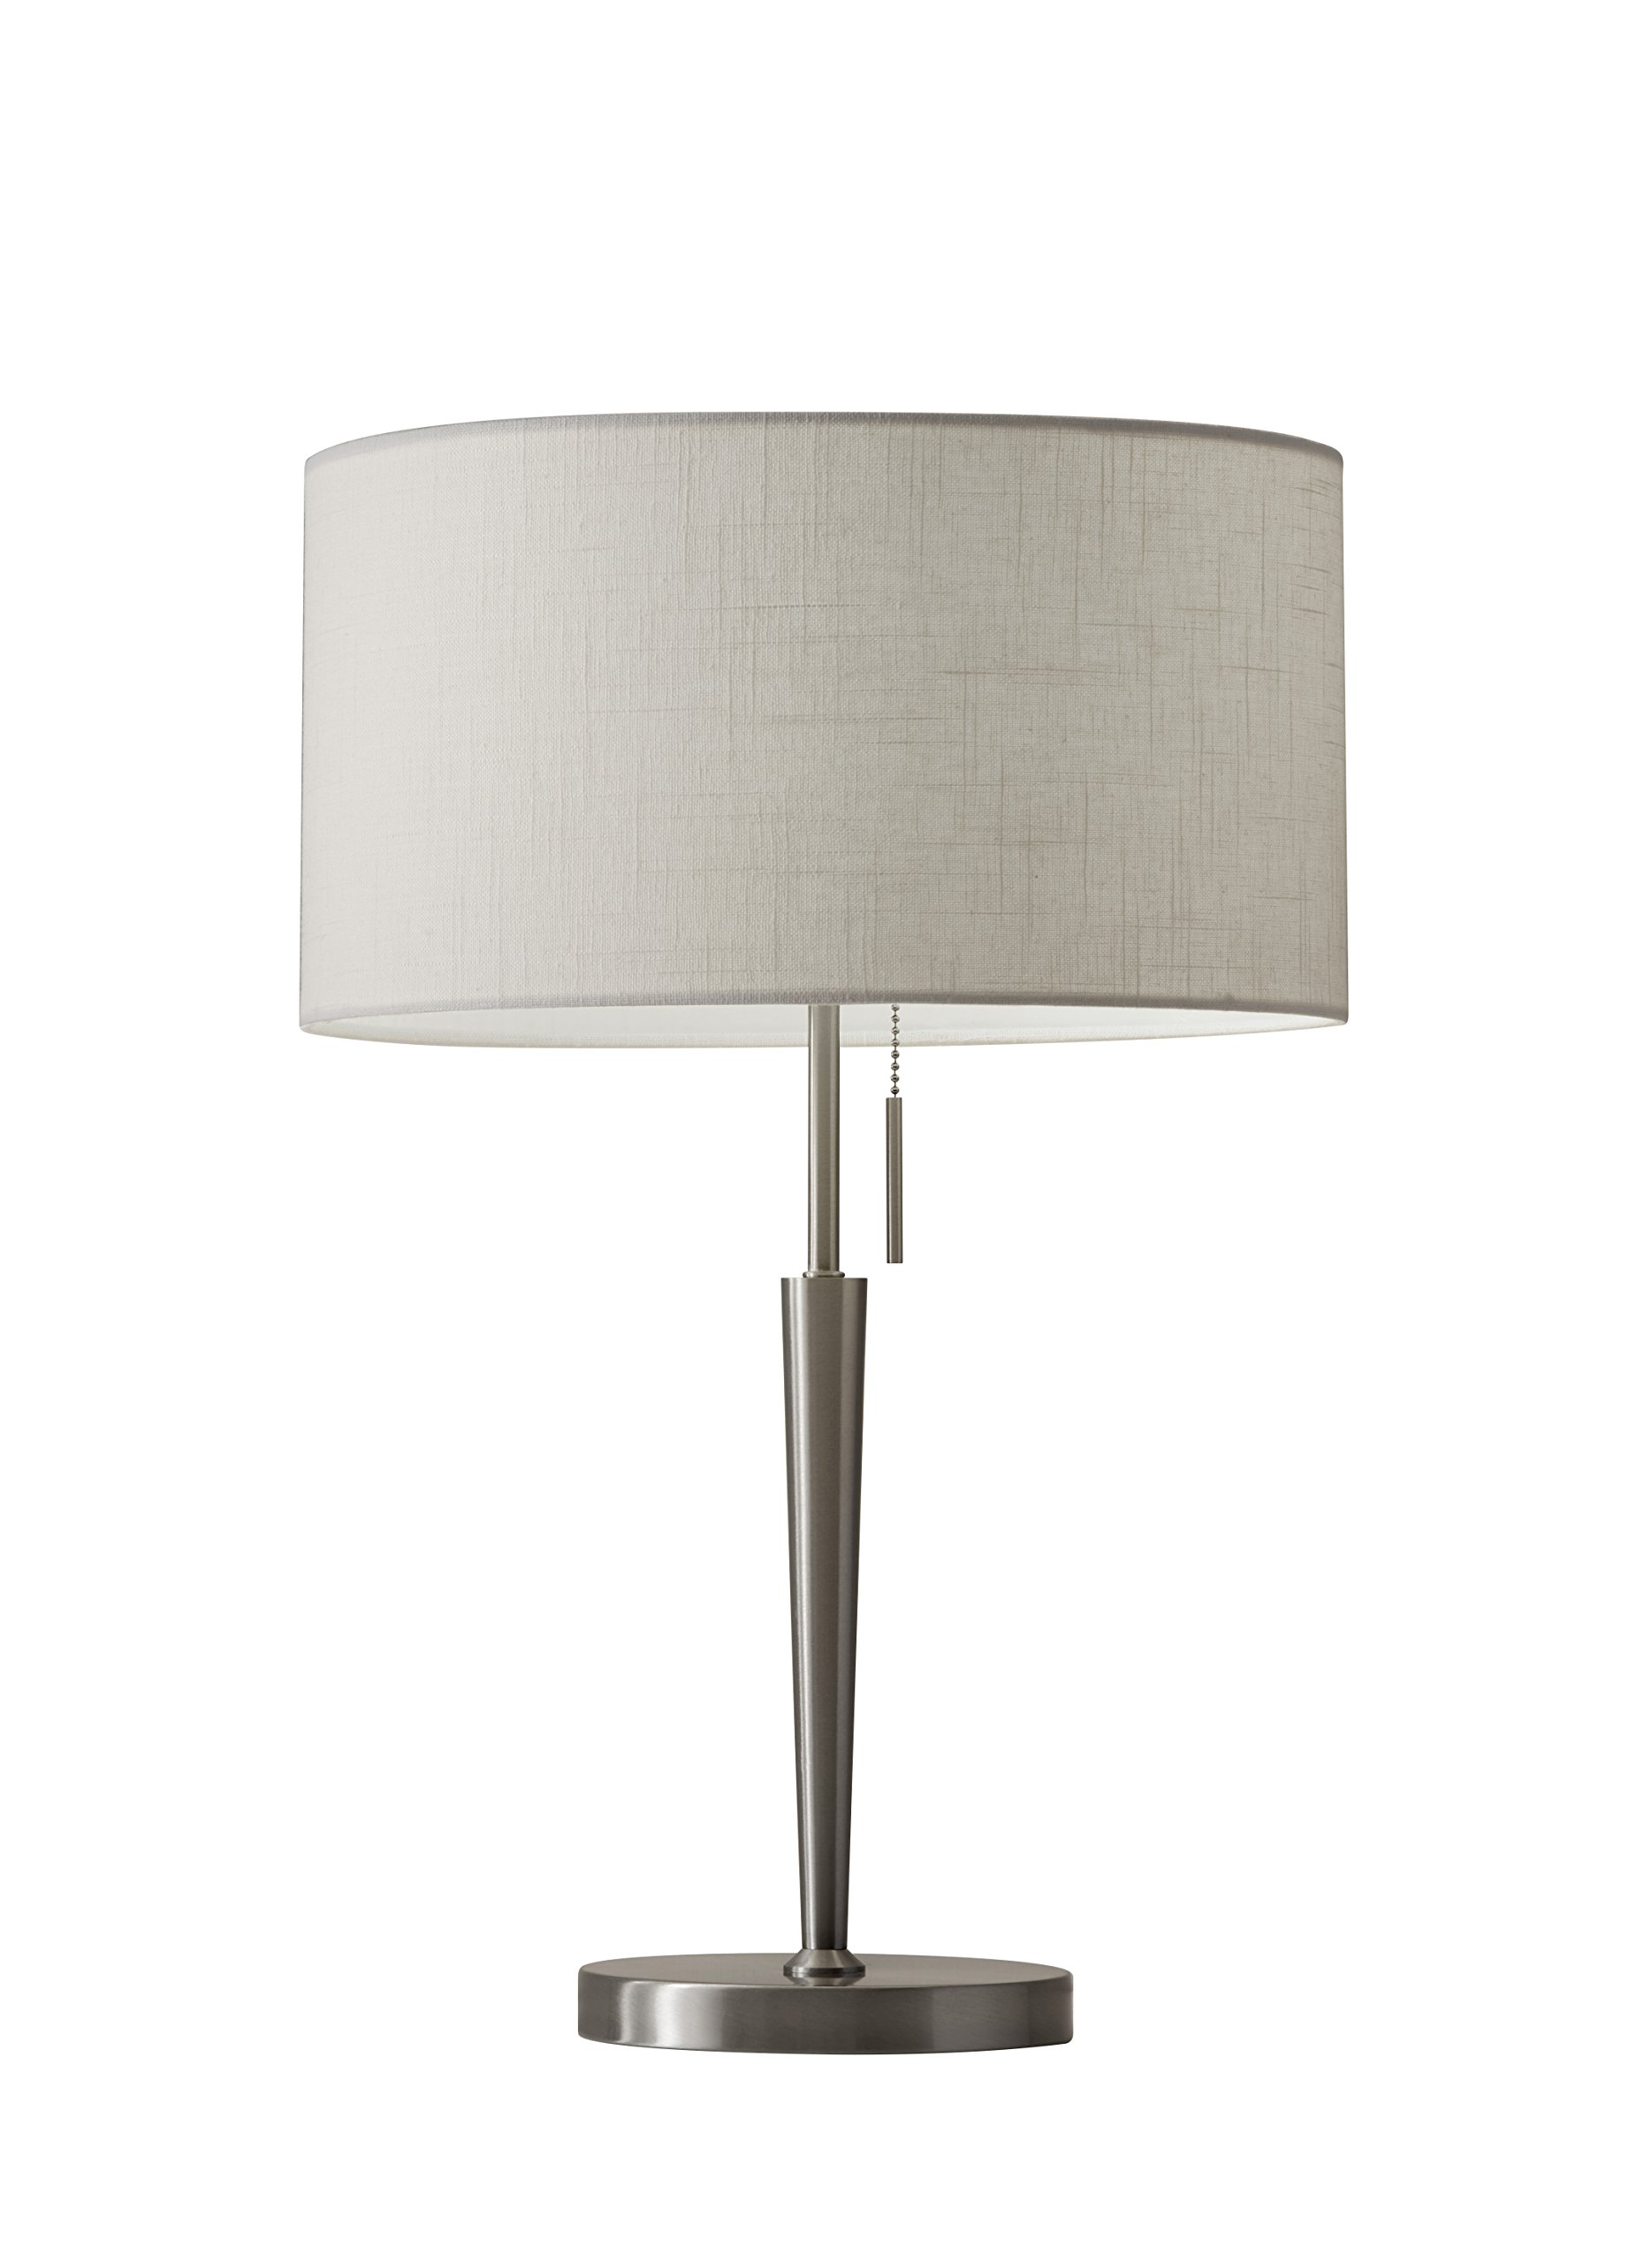 Adesso 3456-22 Hayworth 22'' Table Lamp, Satin Steel, Smart Outlet Compatible